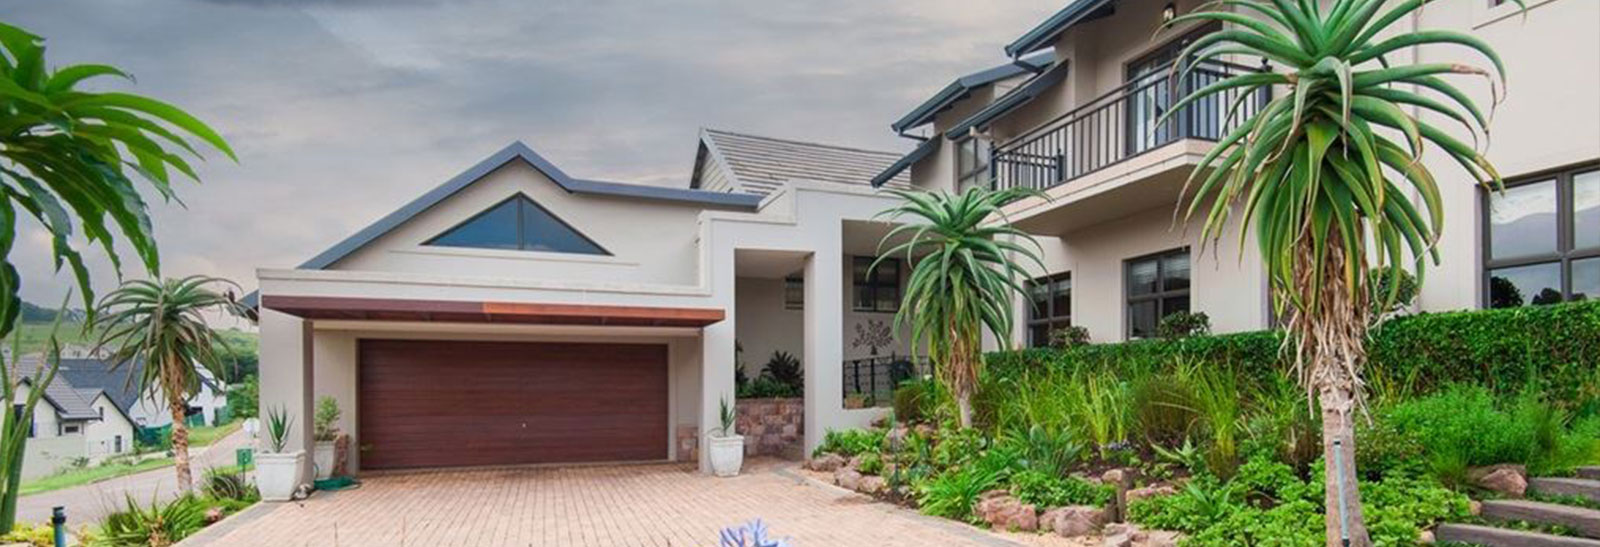 PIXIEG ESTATES | PROPERTIES IN KLOOF slide